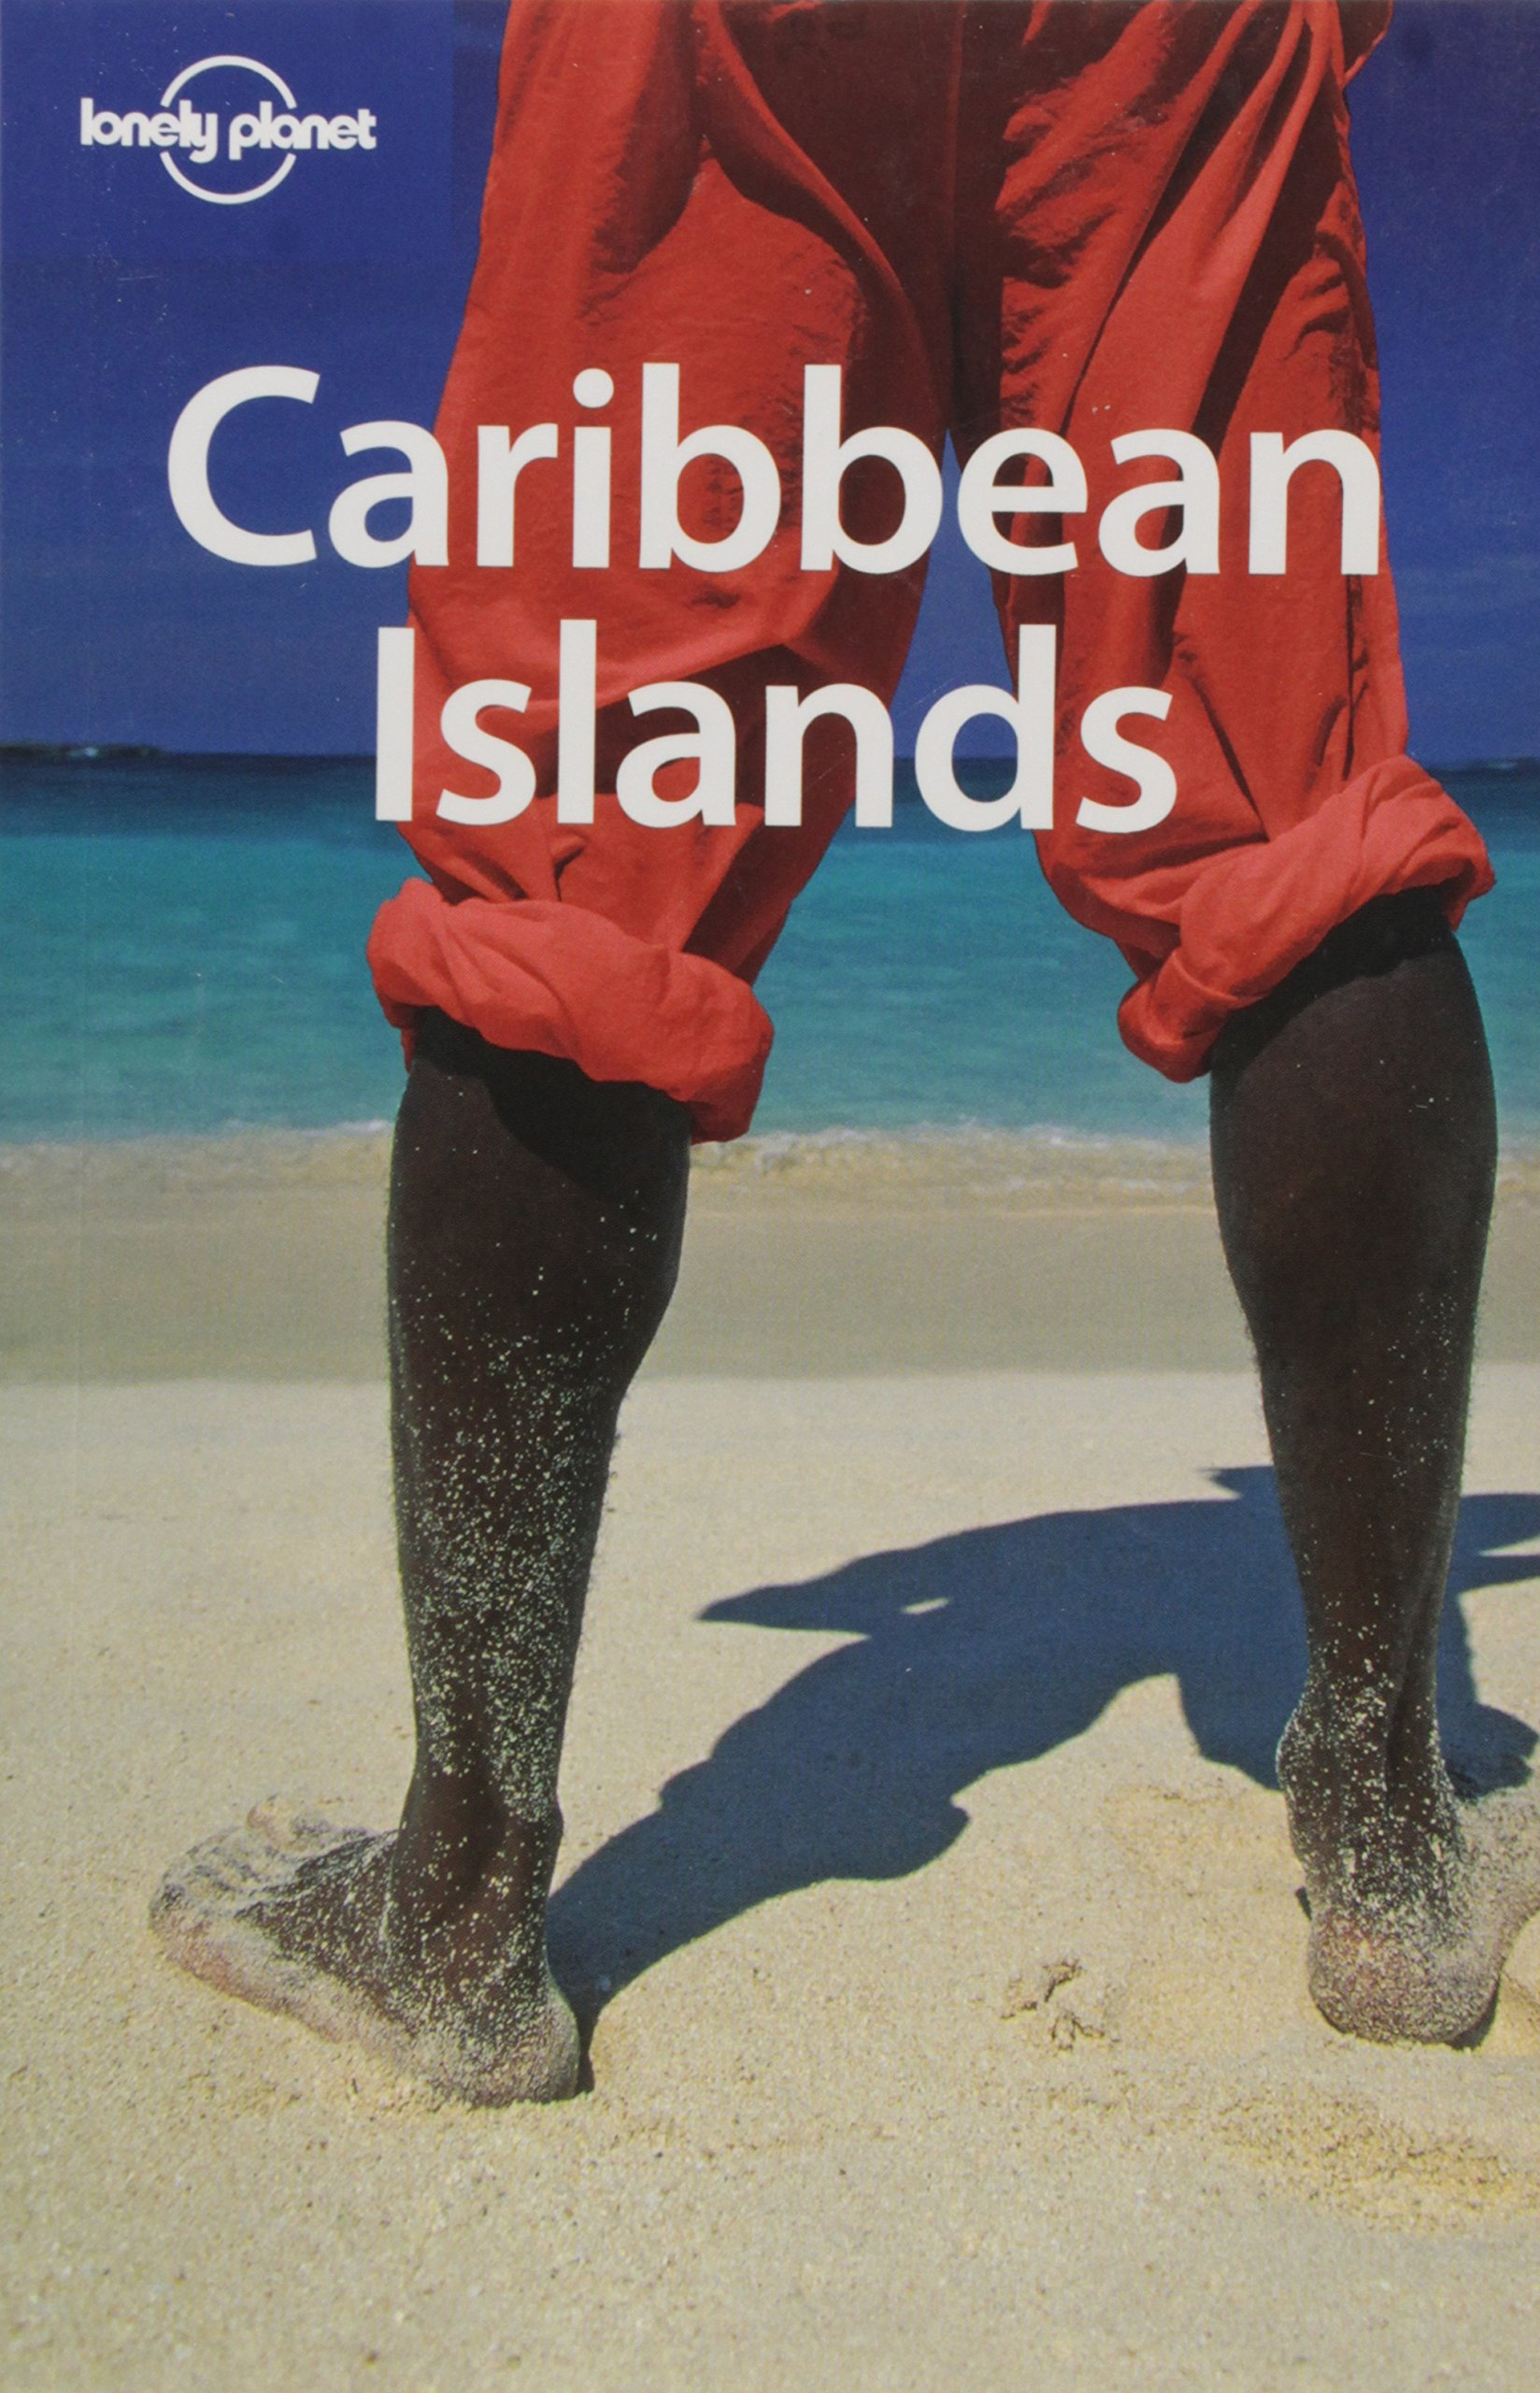 Caribbean Islands (Lonely Planet Caribbean Islands)